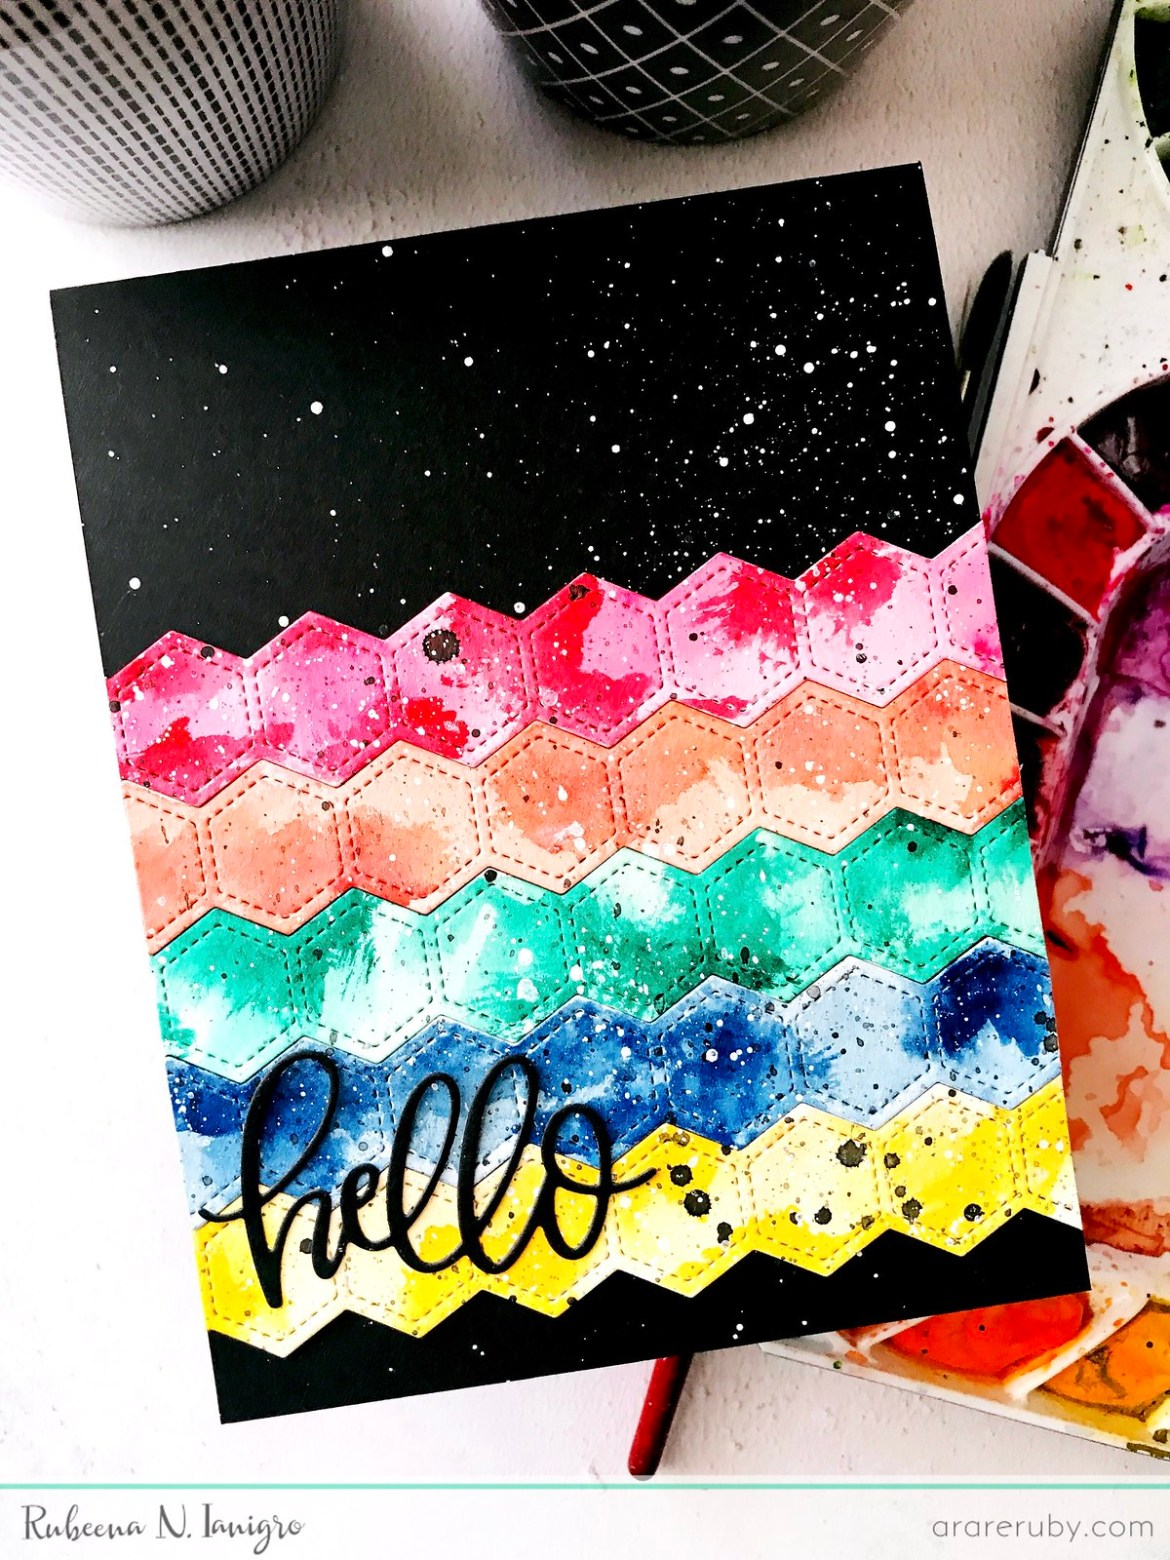 PPP March Blog - Watercolored Die-Cuts 3 - Rubeena Ianigro.jpg